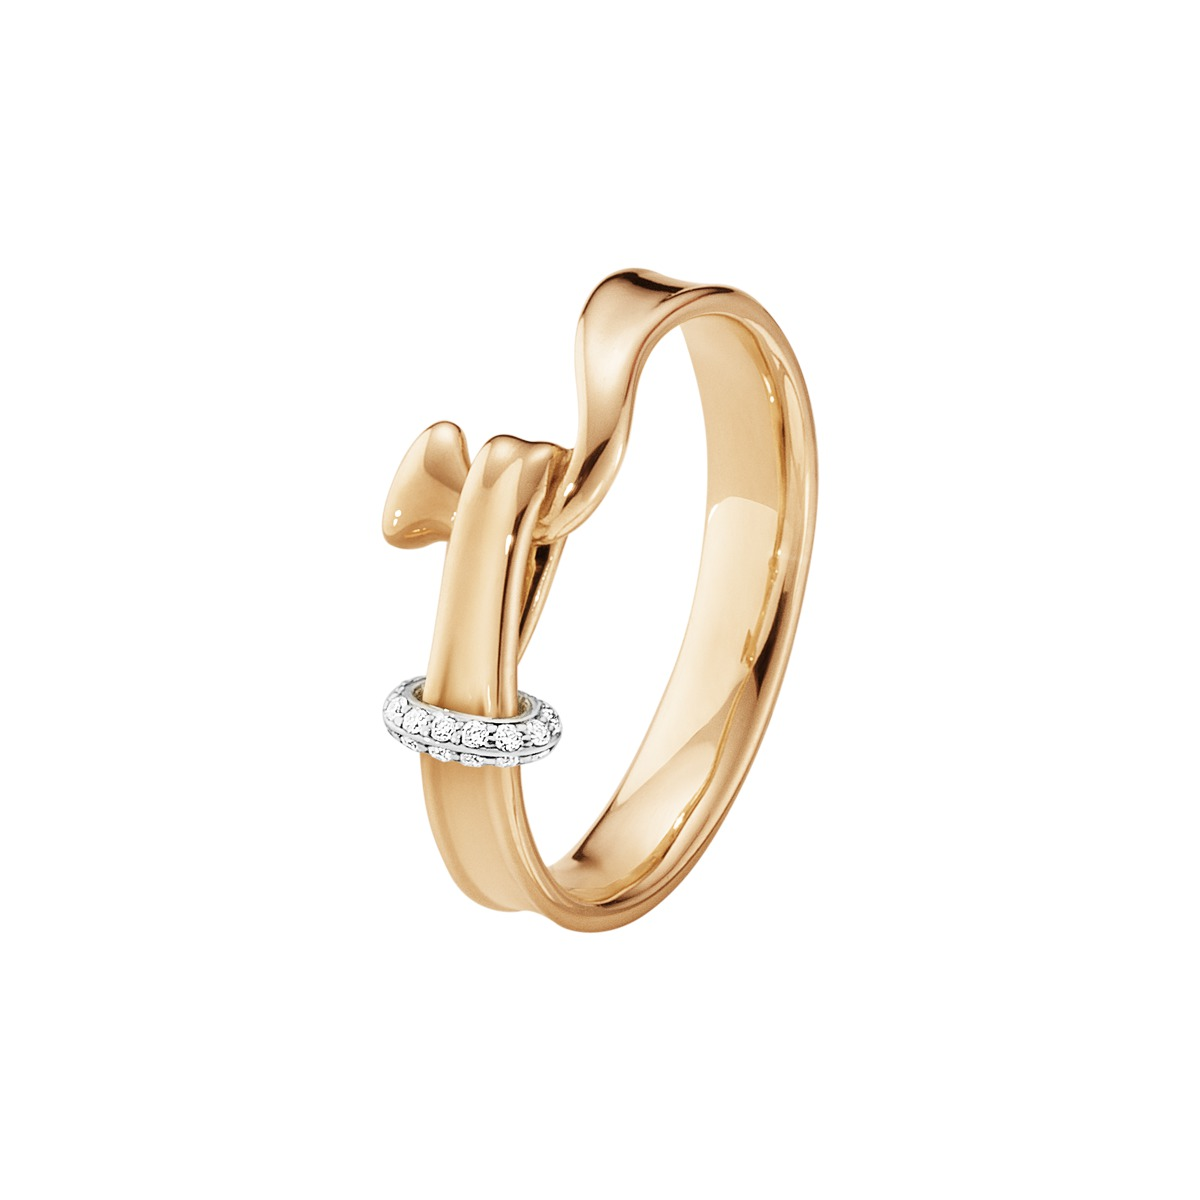 Georg Jensen TORUN ring - 3573460